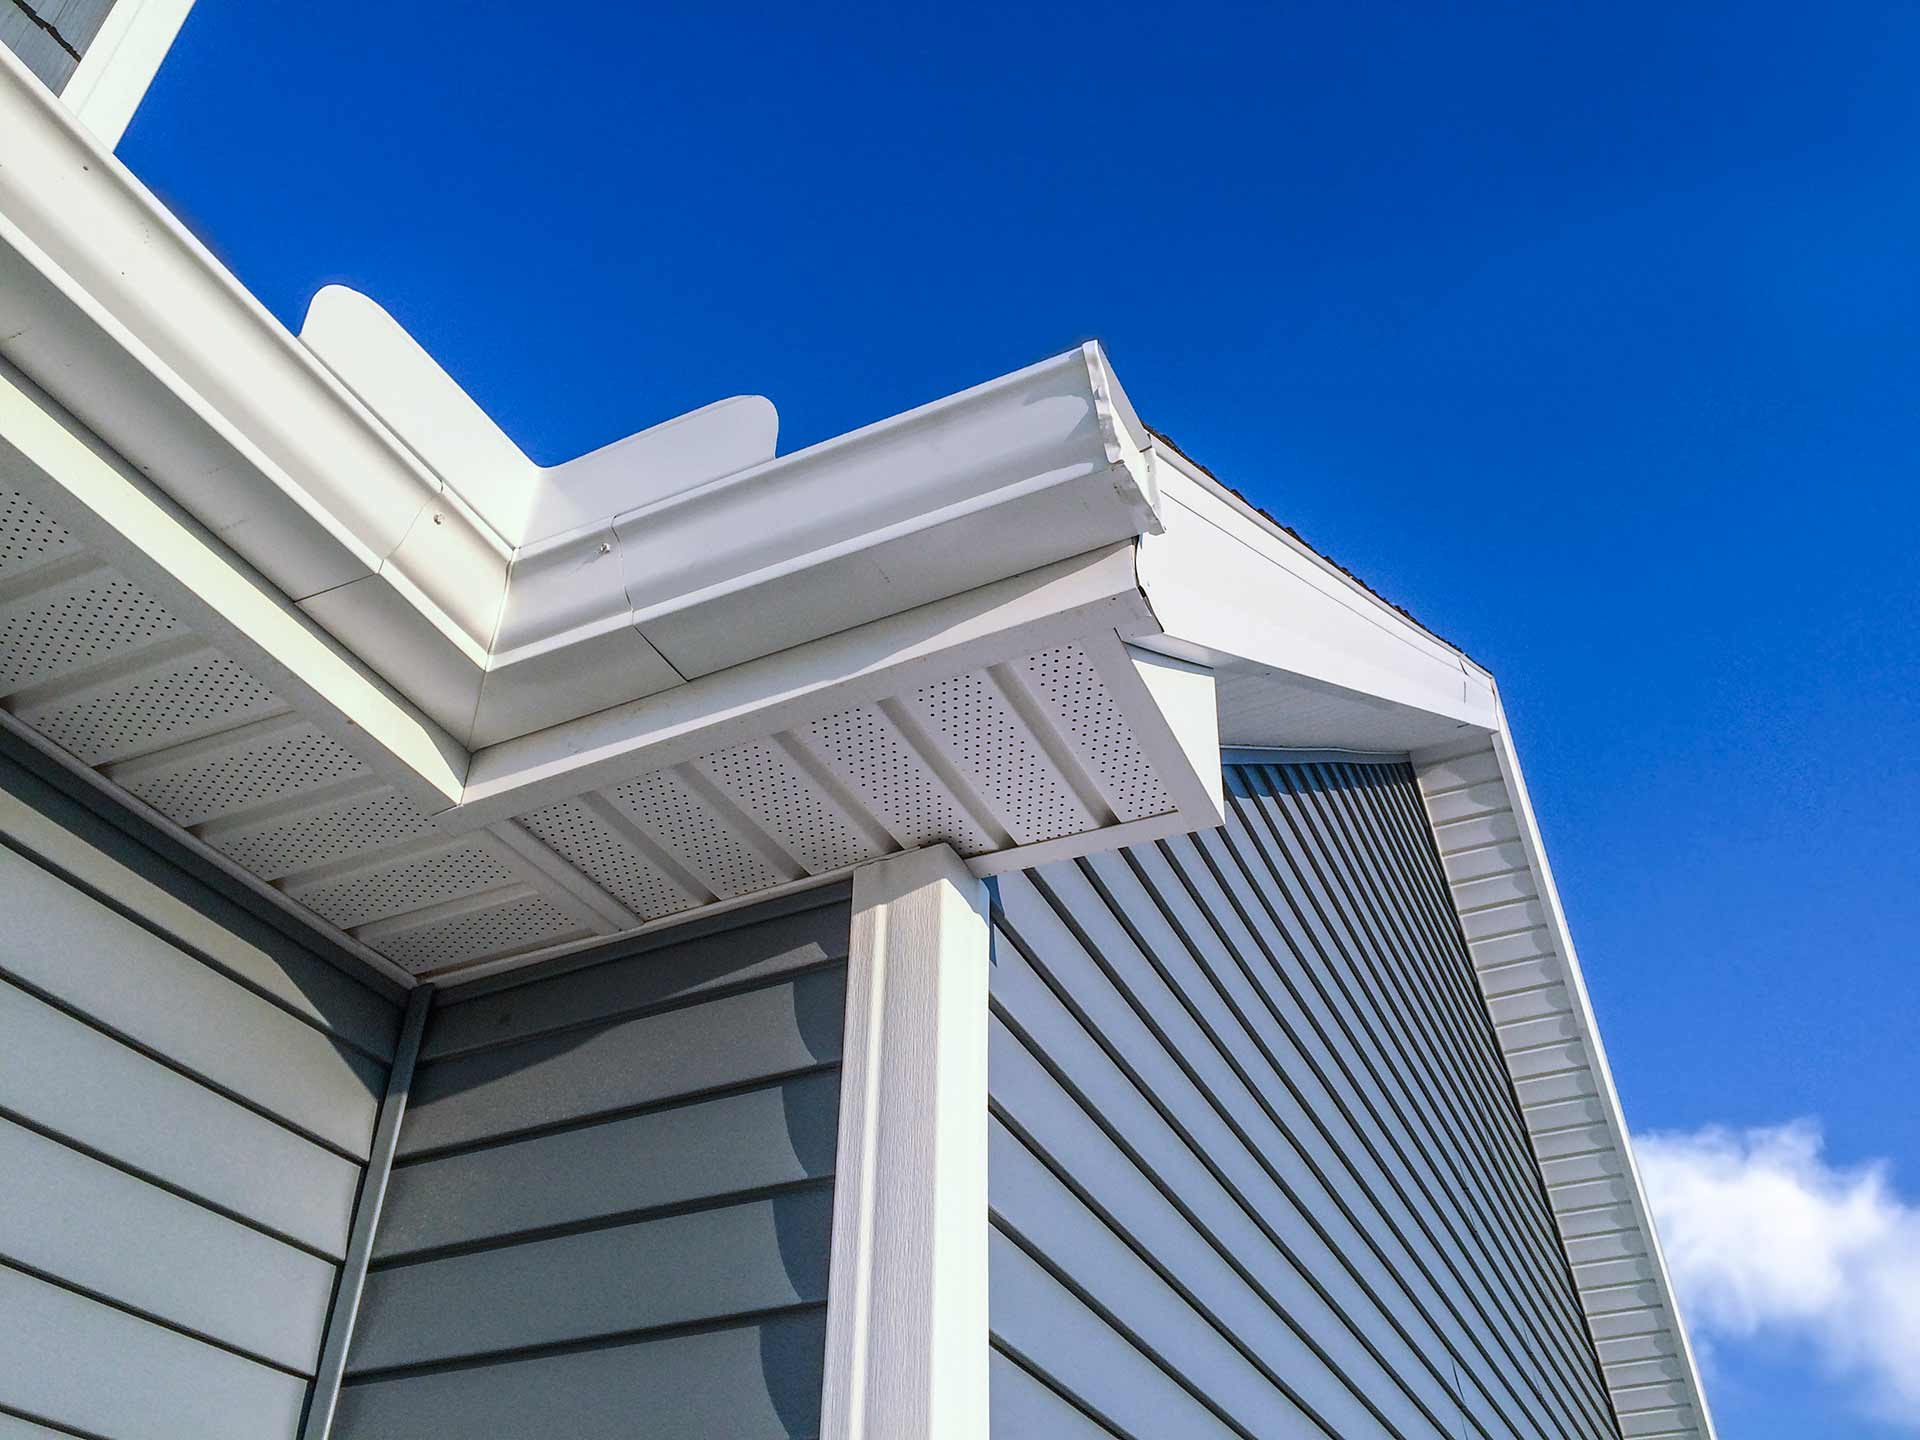 Acm Gutters Gutter Systems Residential Amp Commercial